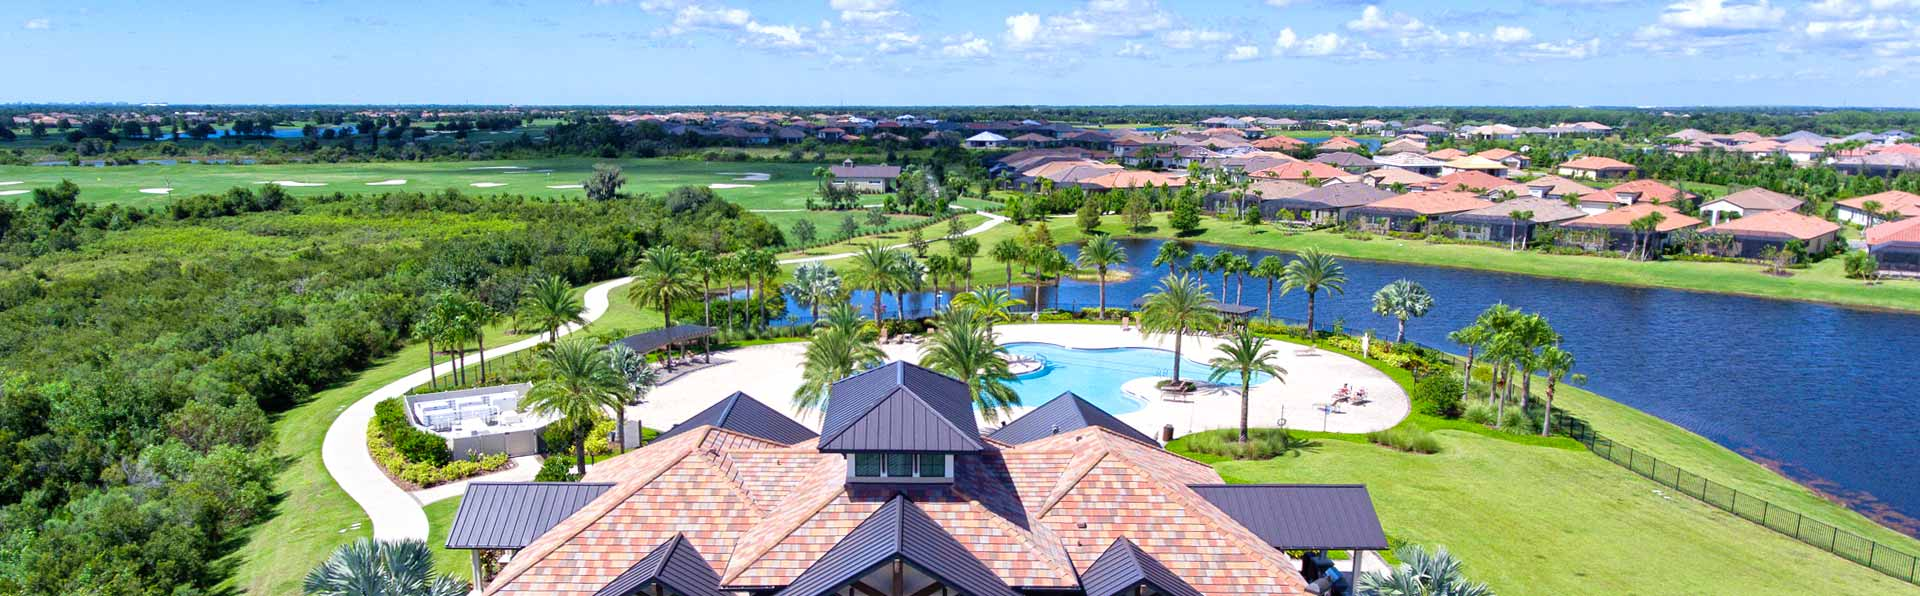 lakewood ranch aerial view